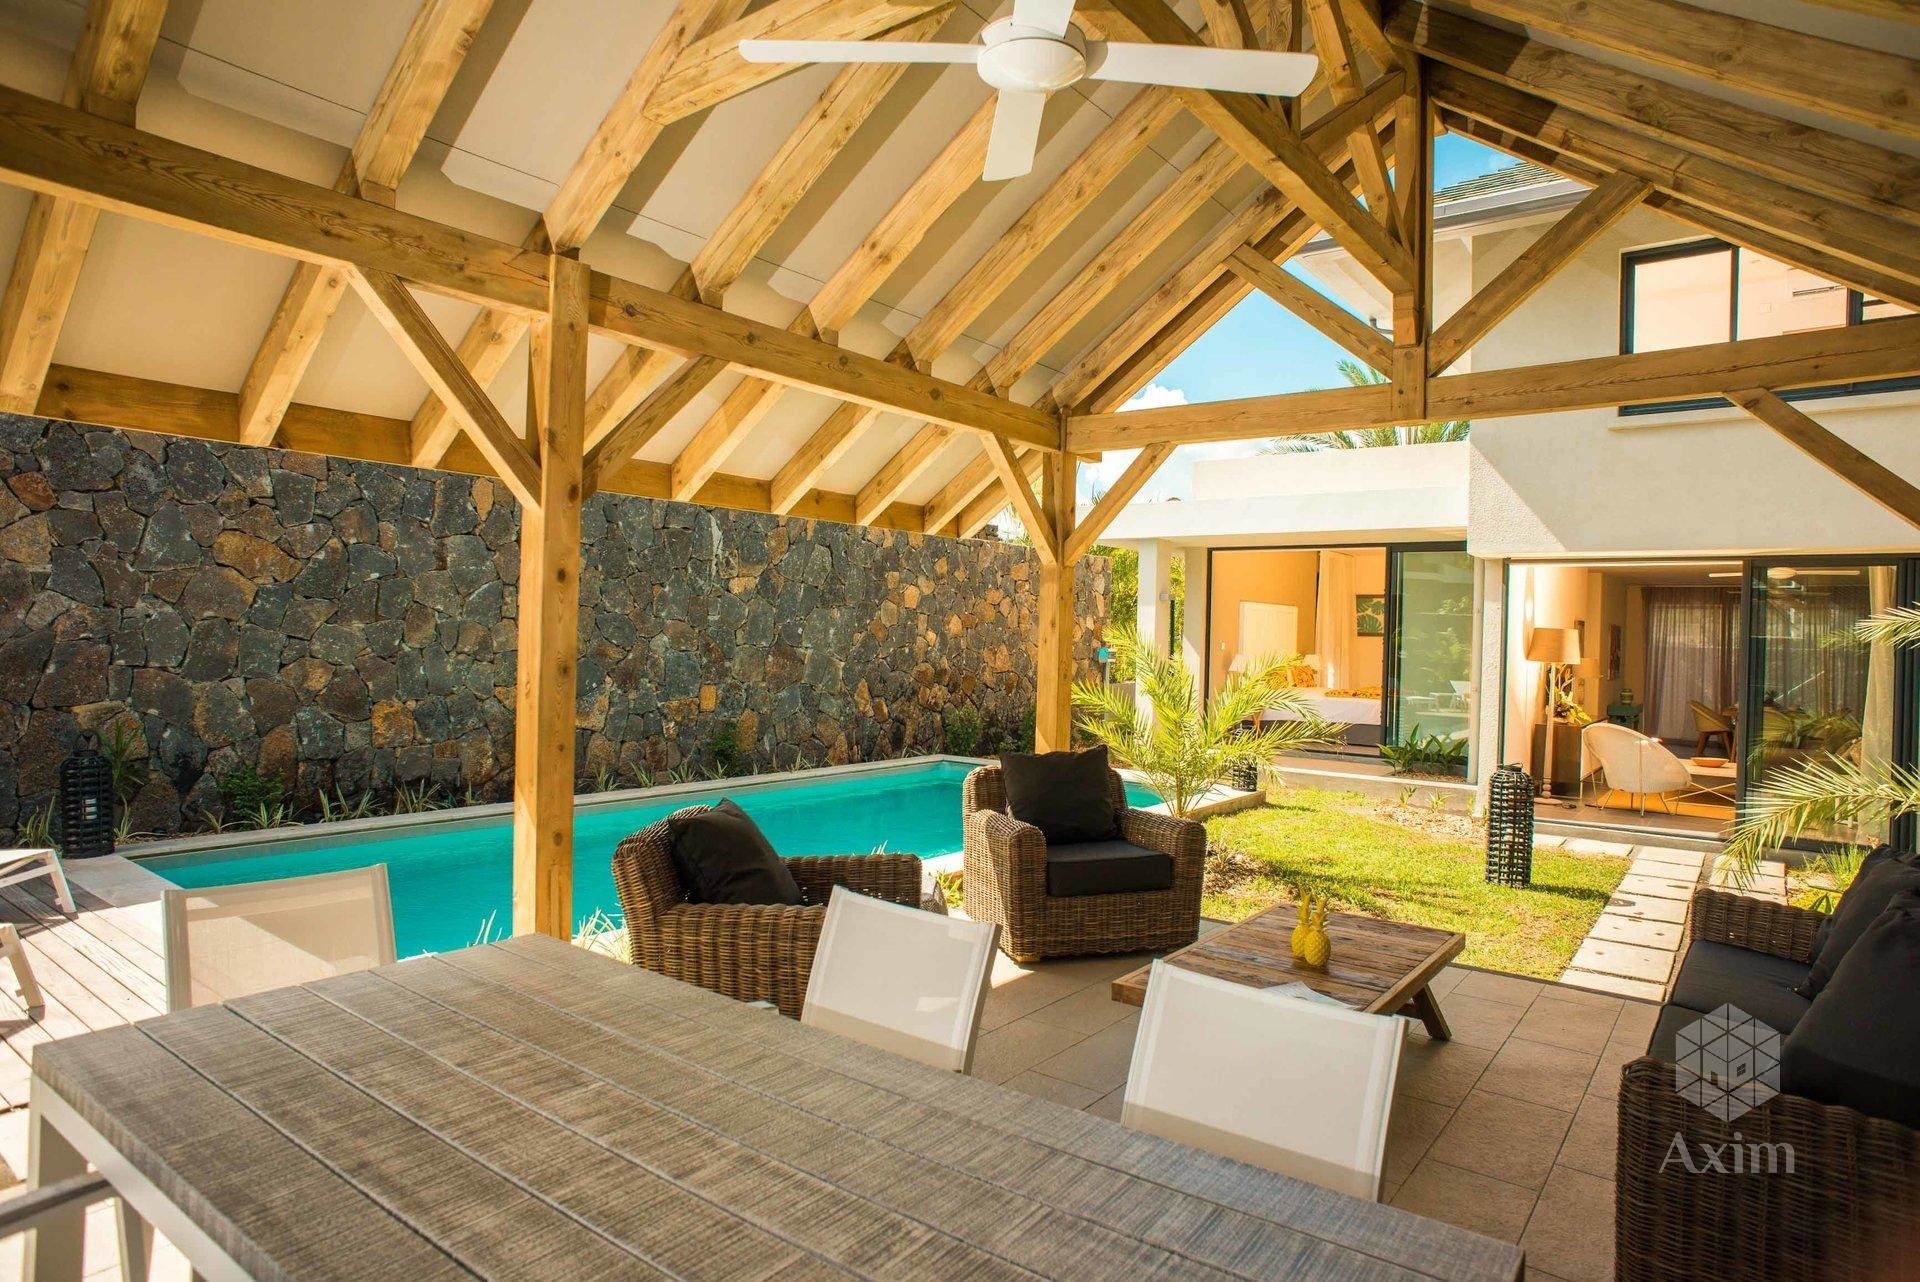 TAMARIN - New 3 bedroom villa in a highly secured residence